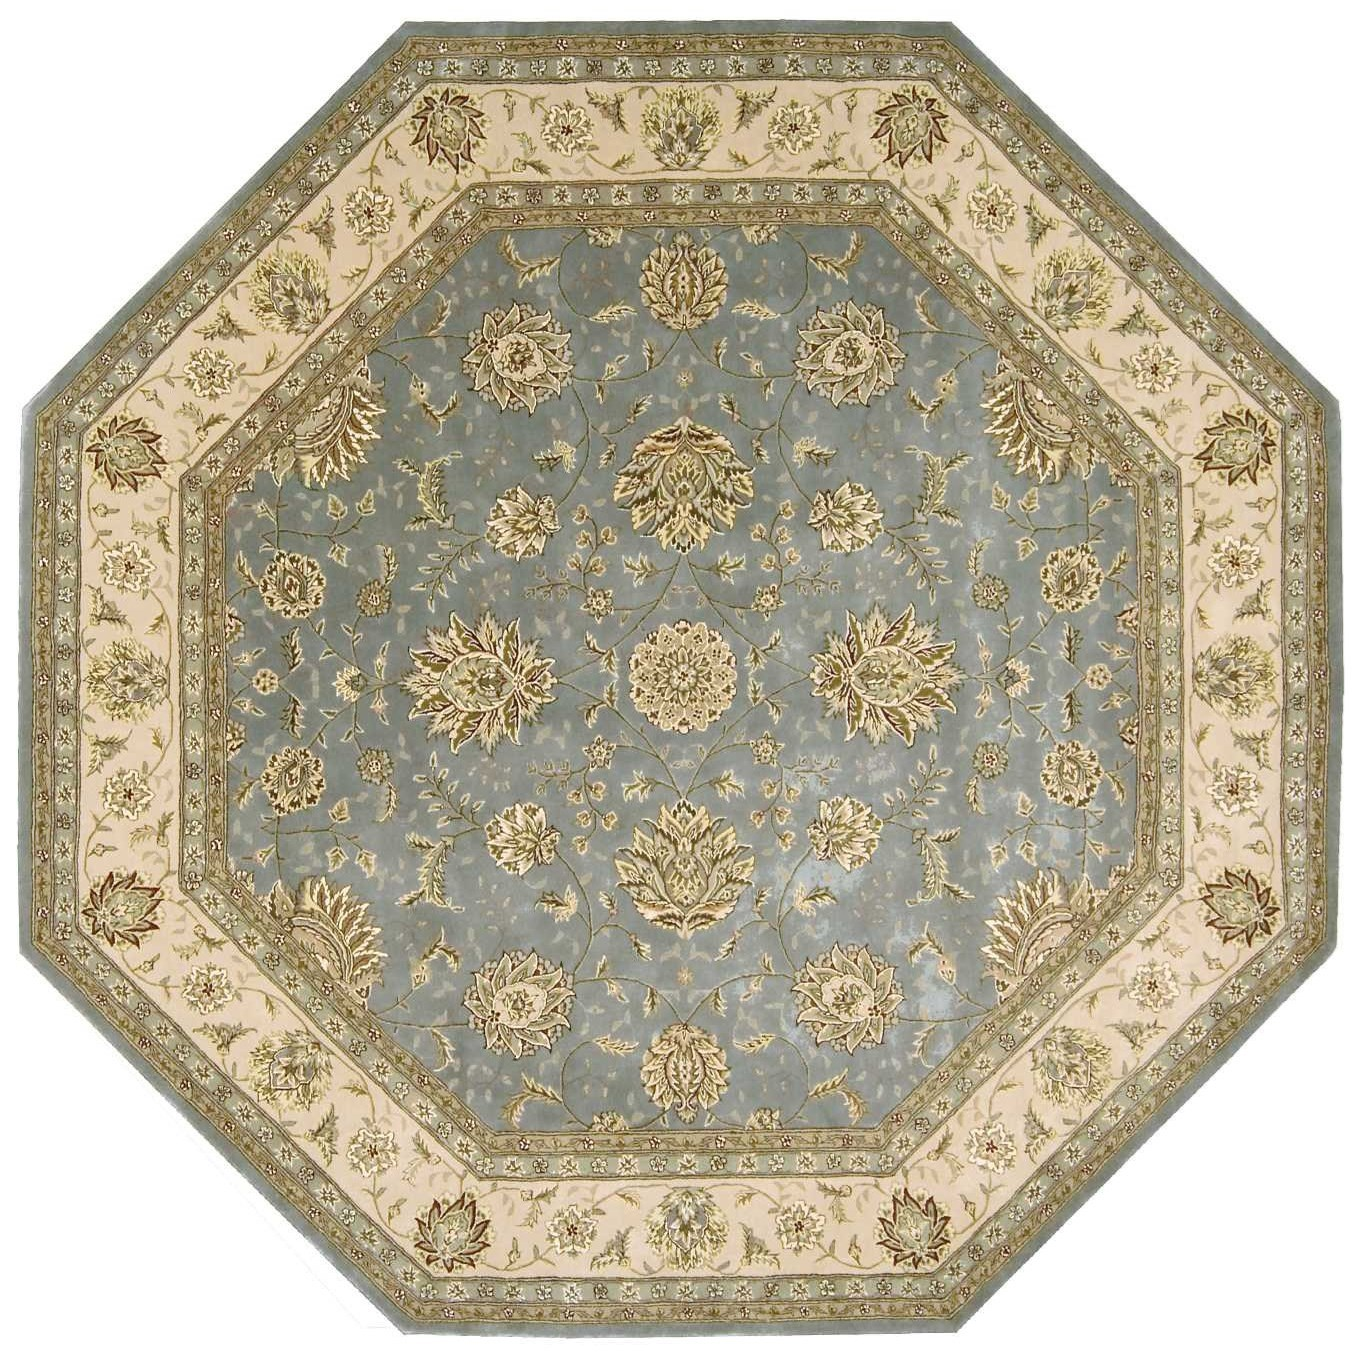 Nourison 2000 2000 2210 Blue 10' Octagon  Area Rug by Nourison at Home Collections Furniture